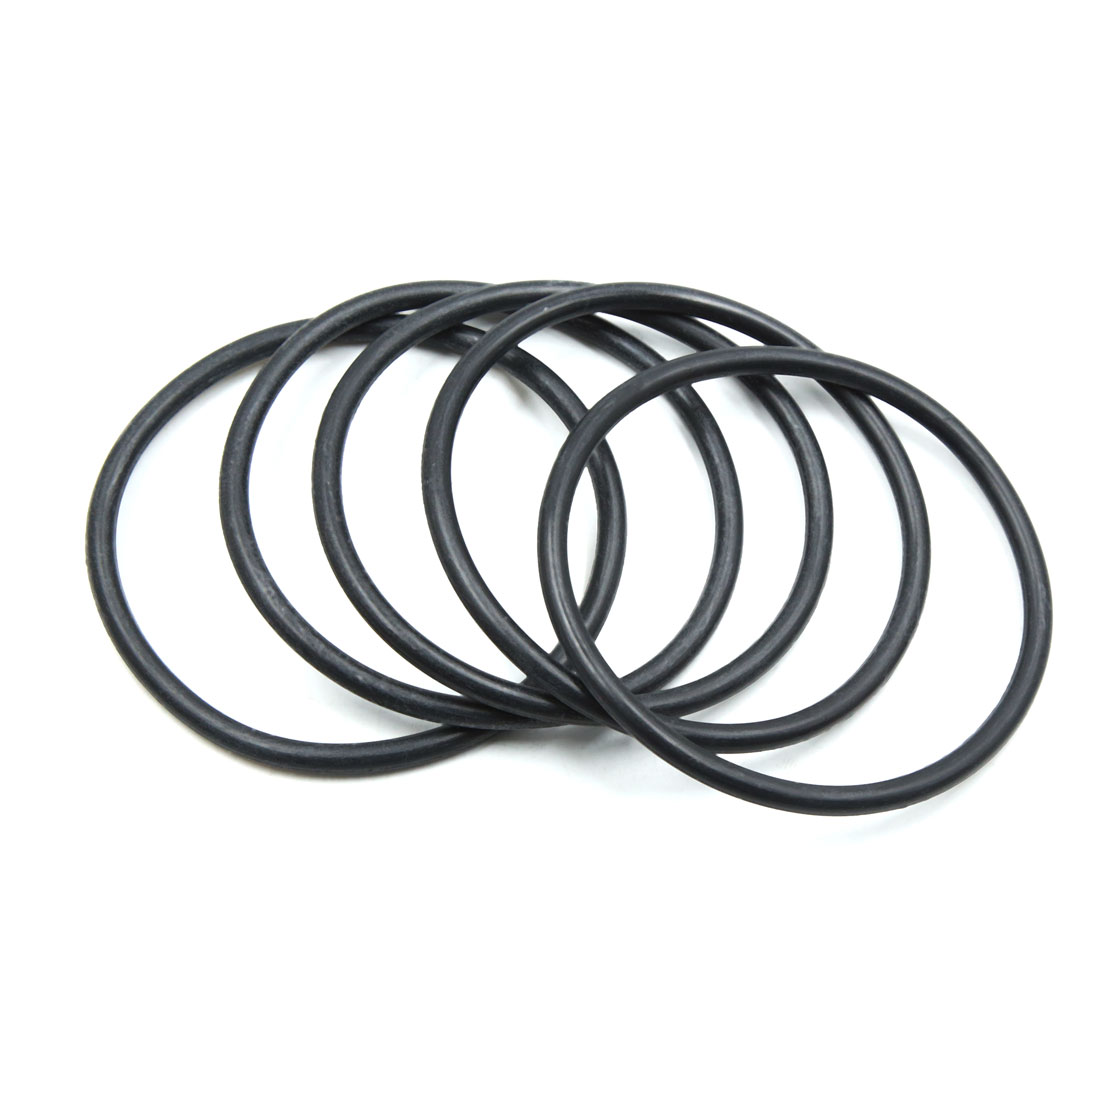 5pcs Black NBR O-Ring Seal Gasket Washer for Automotive Car 85mm x 5.3mm